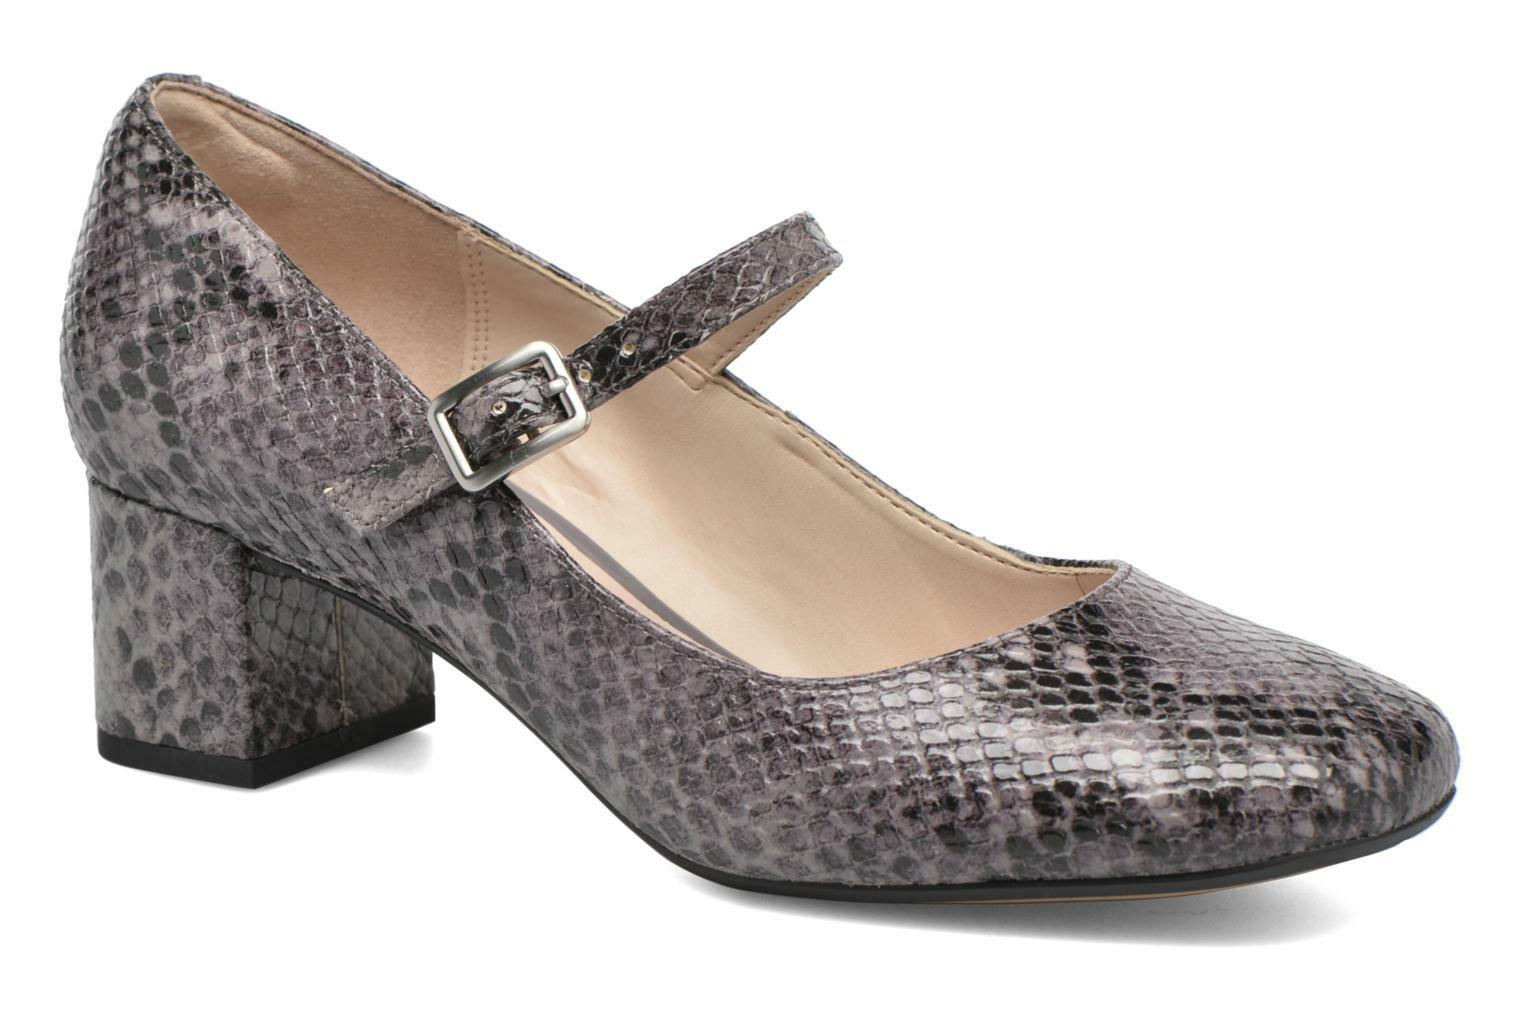 BNIB Clarks gris Snakeskin Leather Smart Mid Block Heel Mary Jane chaussures Taille 5.5